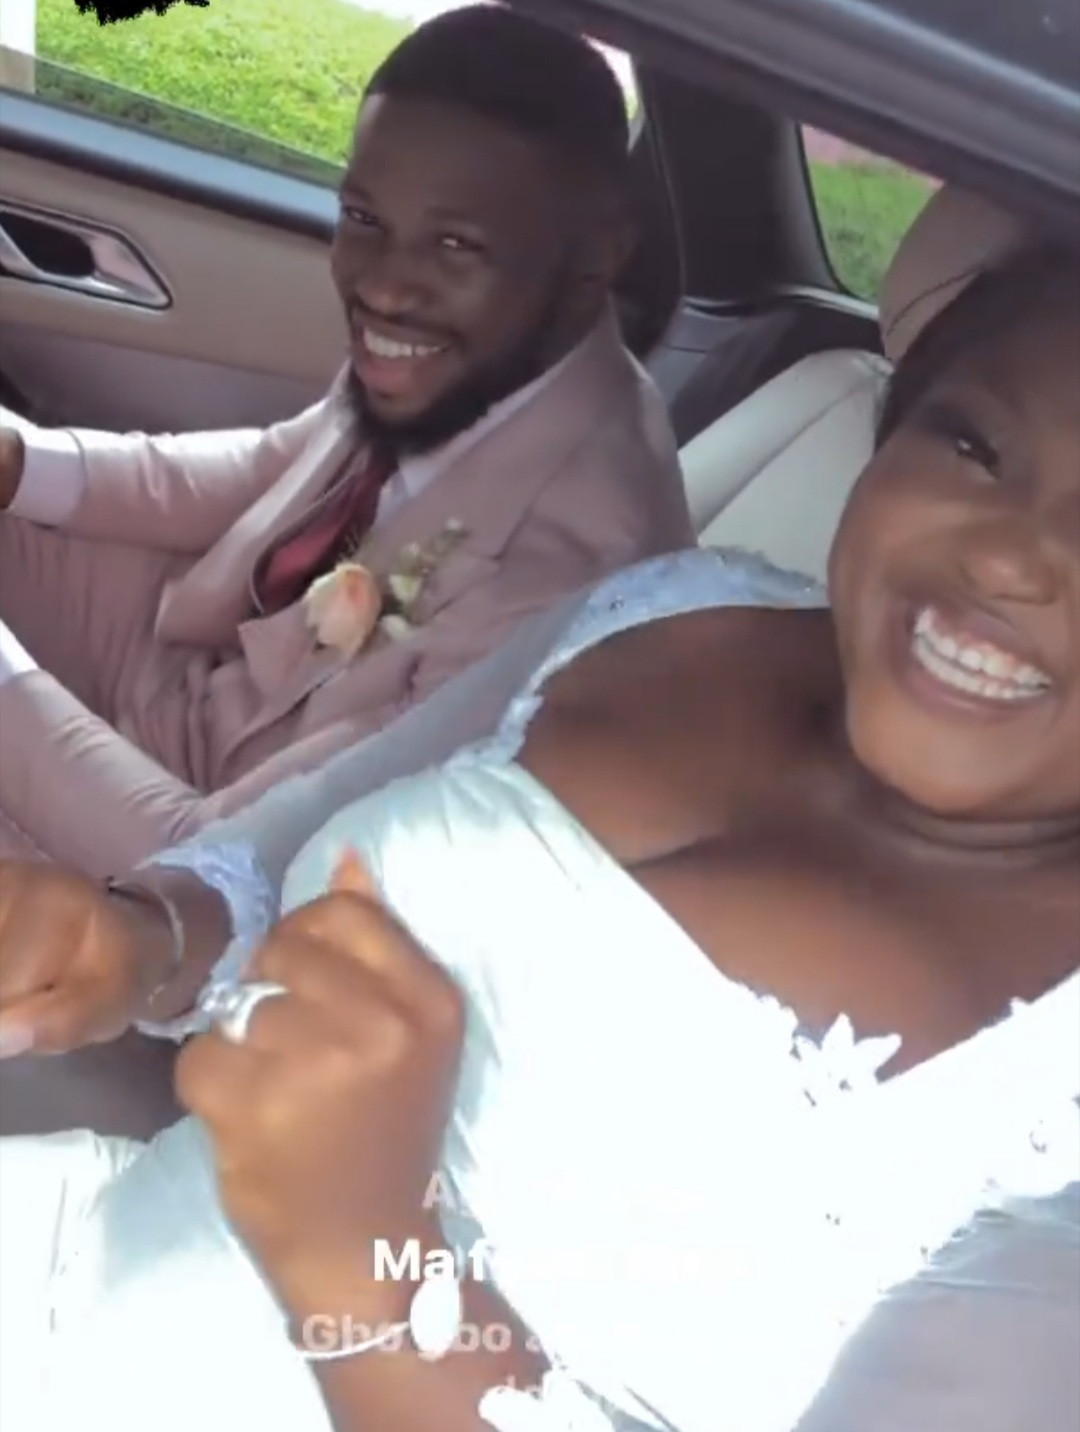 613d14752b3ab - Photos and videos from the wedding of actors Stan Nze and Blessing Obasi